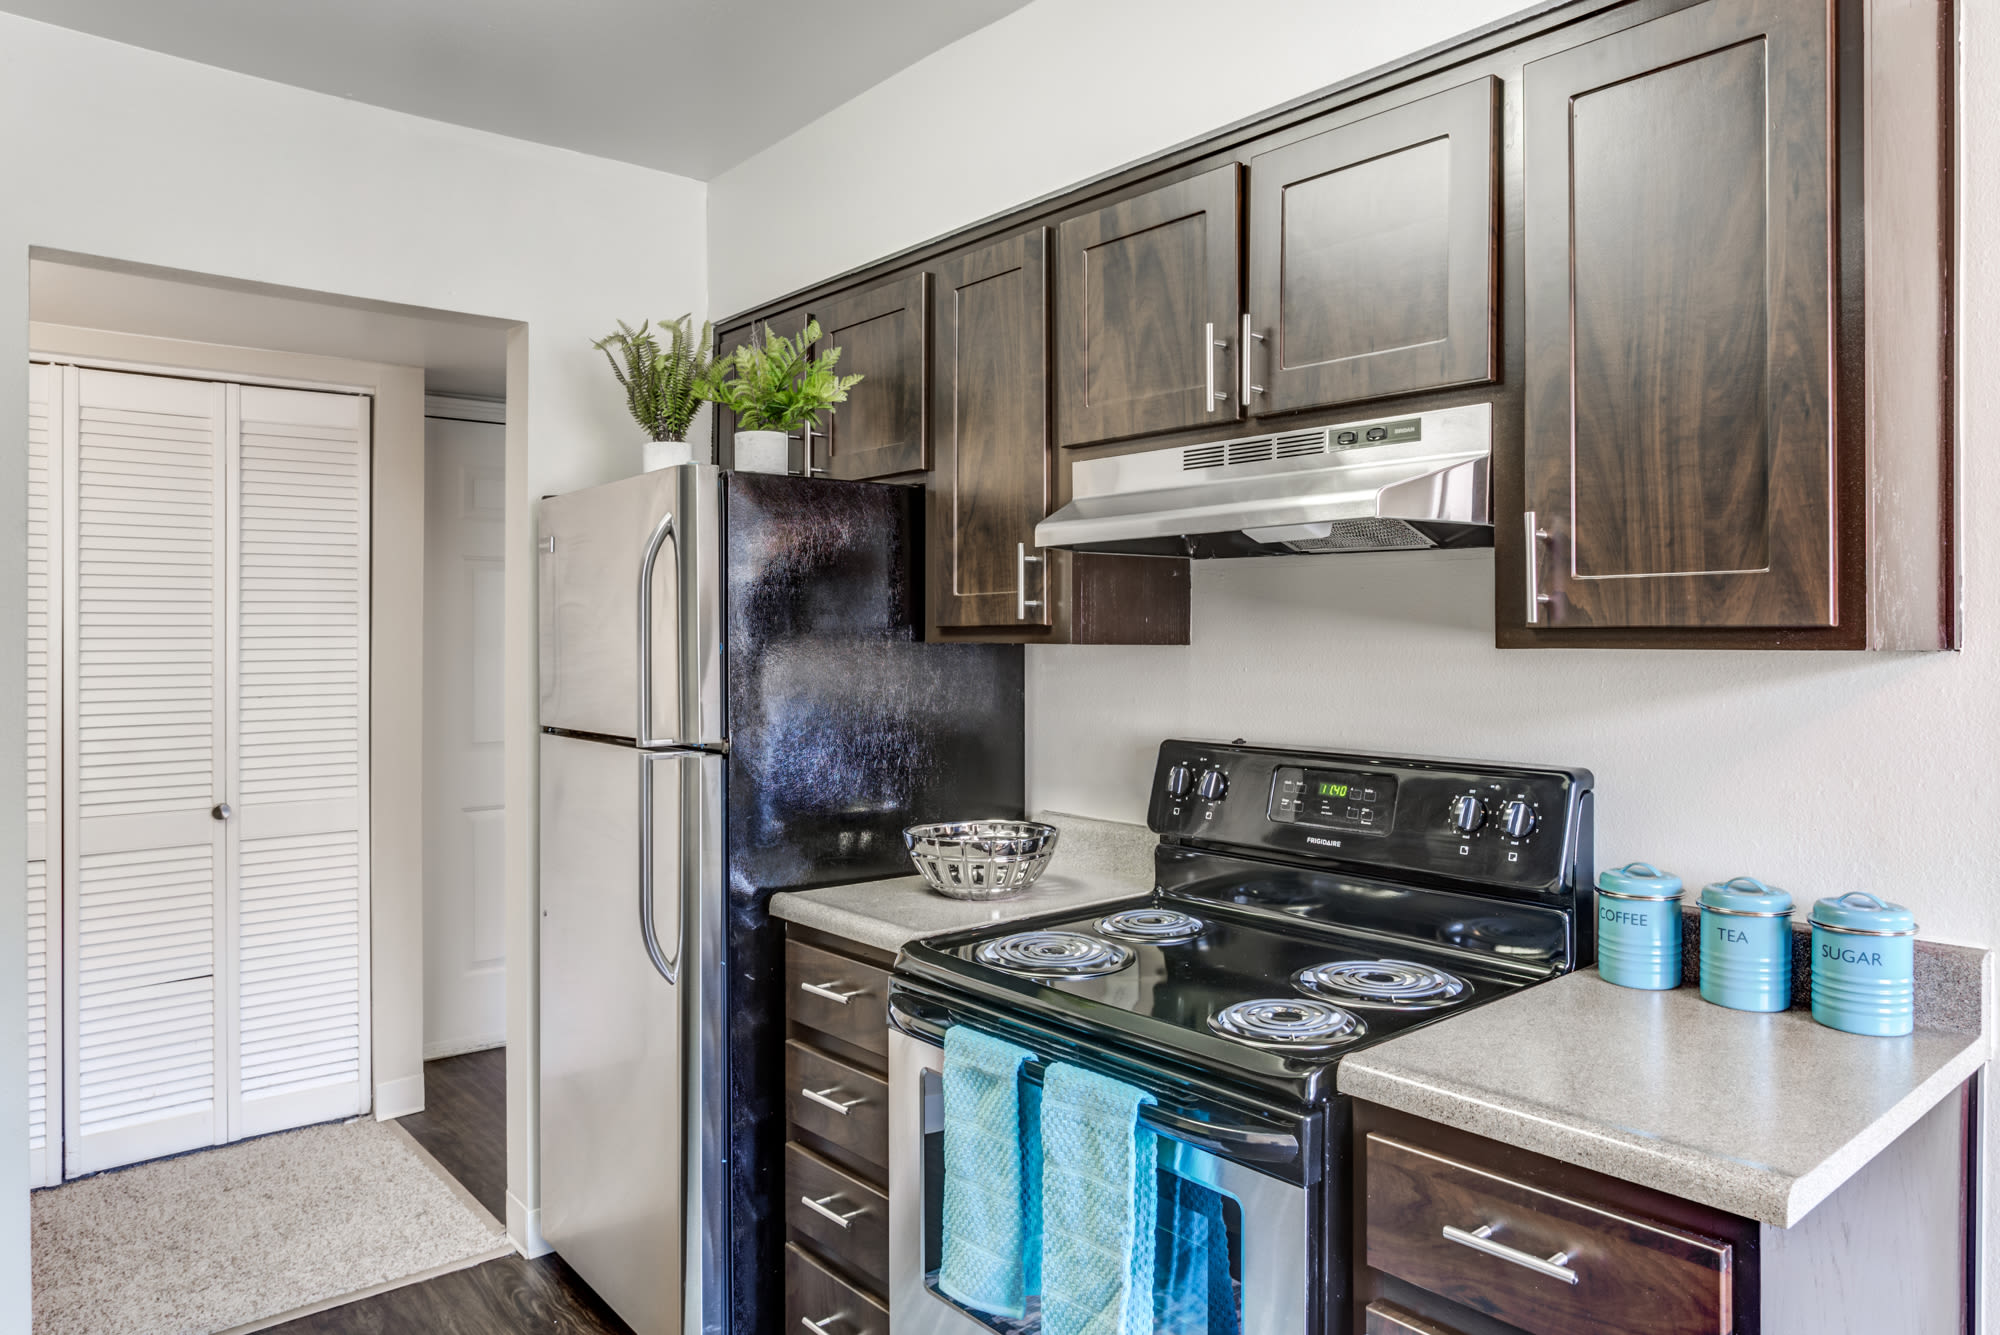 Midvale Apartments for Rent near SLC UT off Ft Union